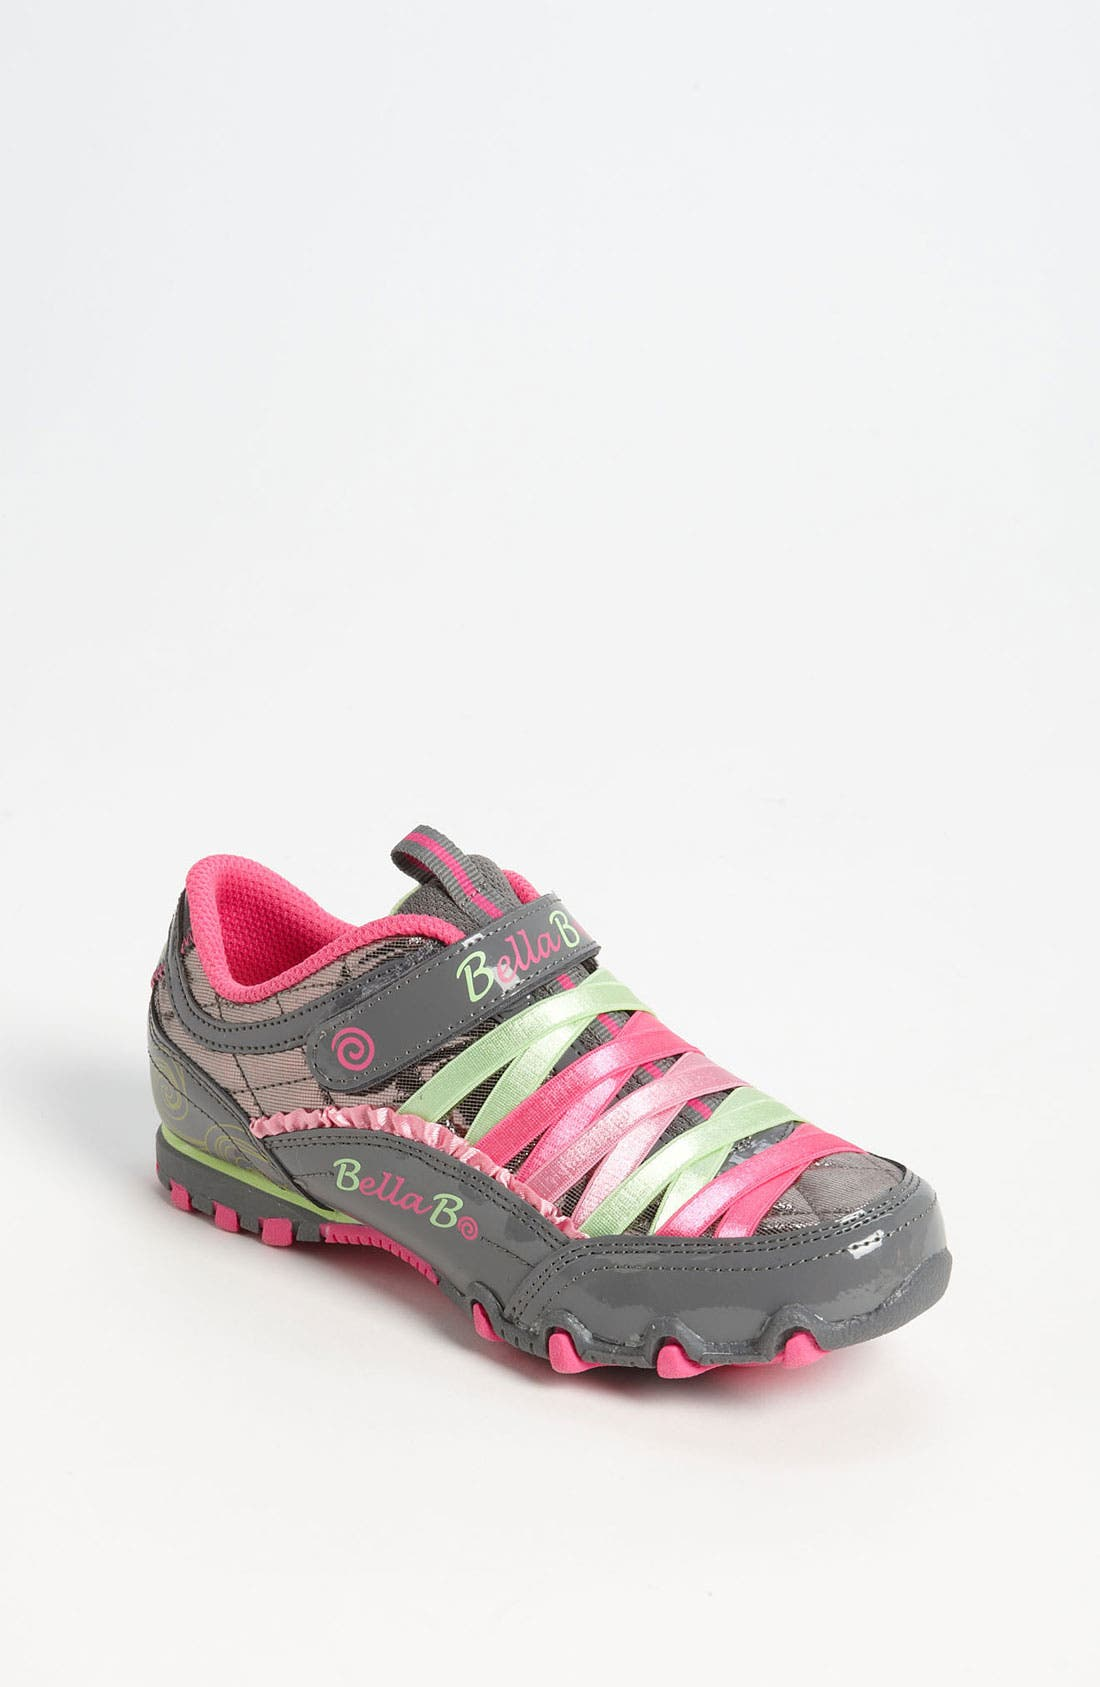 Alternate Image 1 Selected - SKECHERS 'Bella Ballerina - Sweet Spun' Sneaker (Toddler & Little Kid)